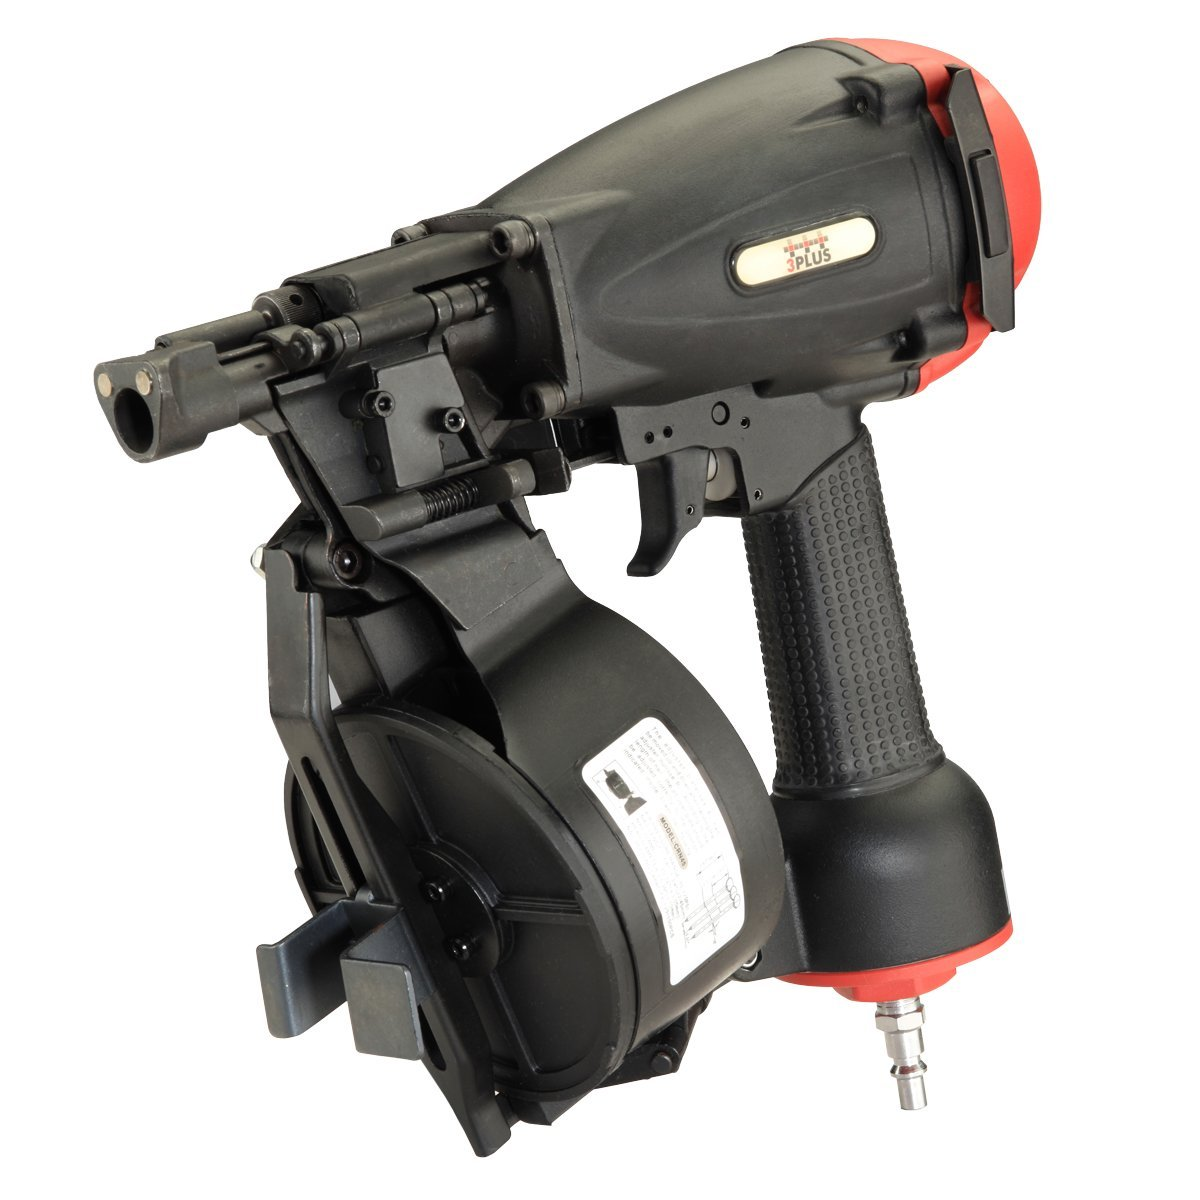 3PLUS HCN45SP 11 Gauge 15 Degree 3/4'' to 1-3/4'' Coil Roofing Nailer by 3PLUS (Image #3)